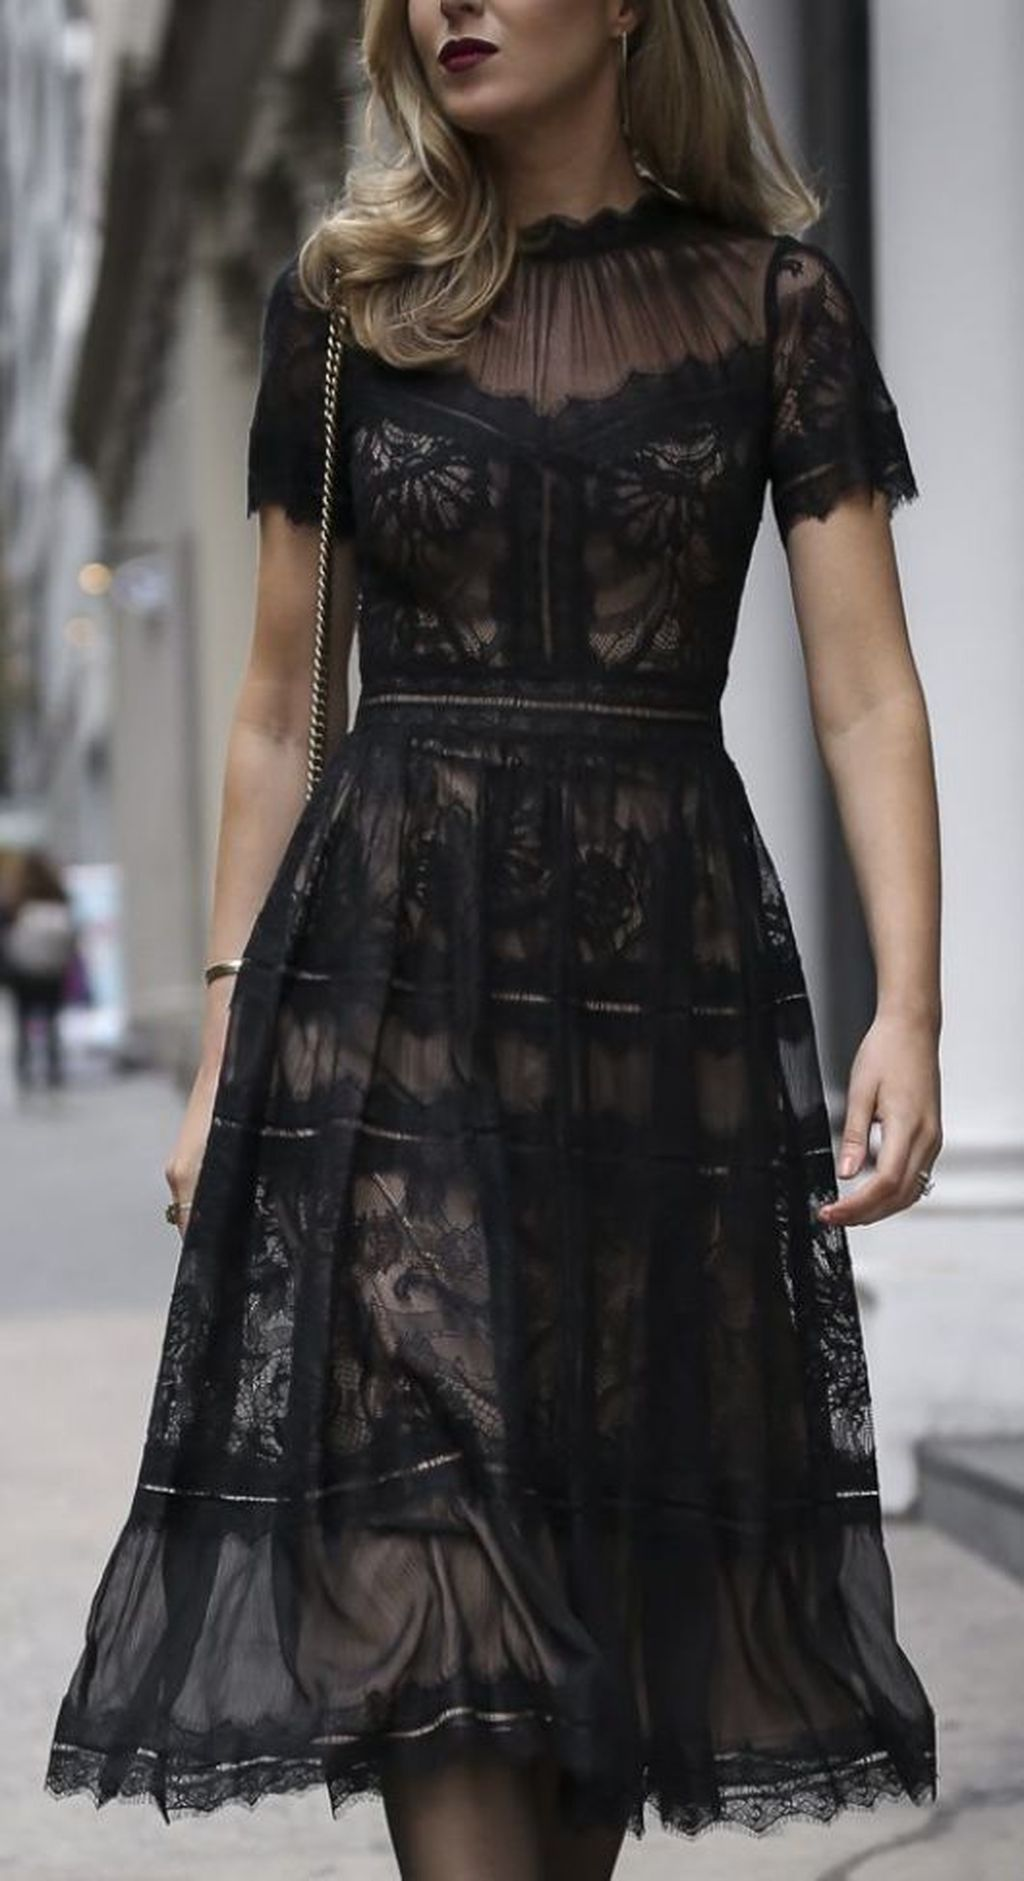 Lace dress styles 2018  Nice  Adorable Lace Dresses Classic Styles Ideas Everybody Will